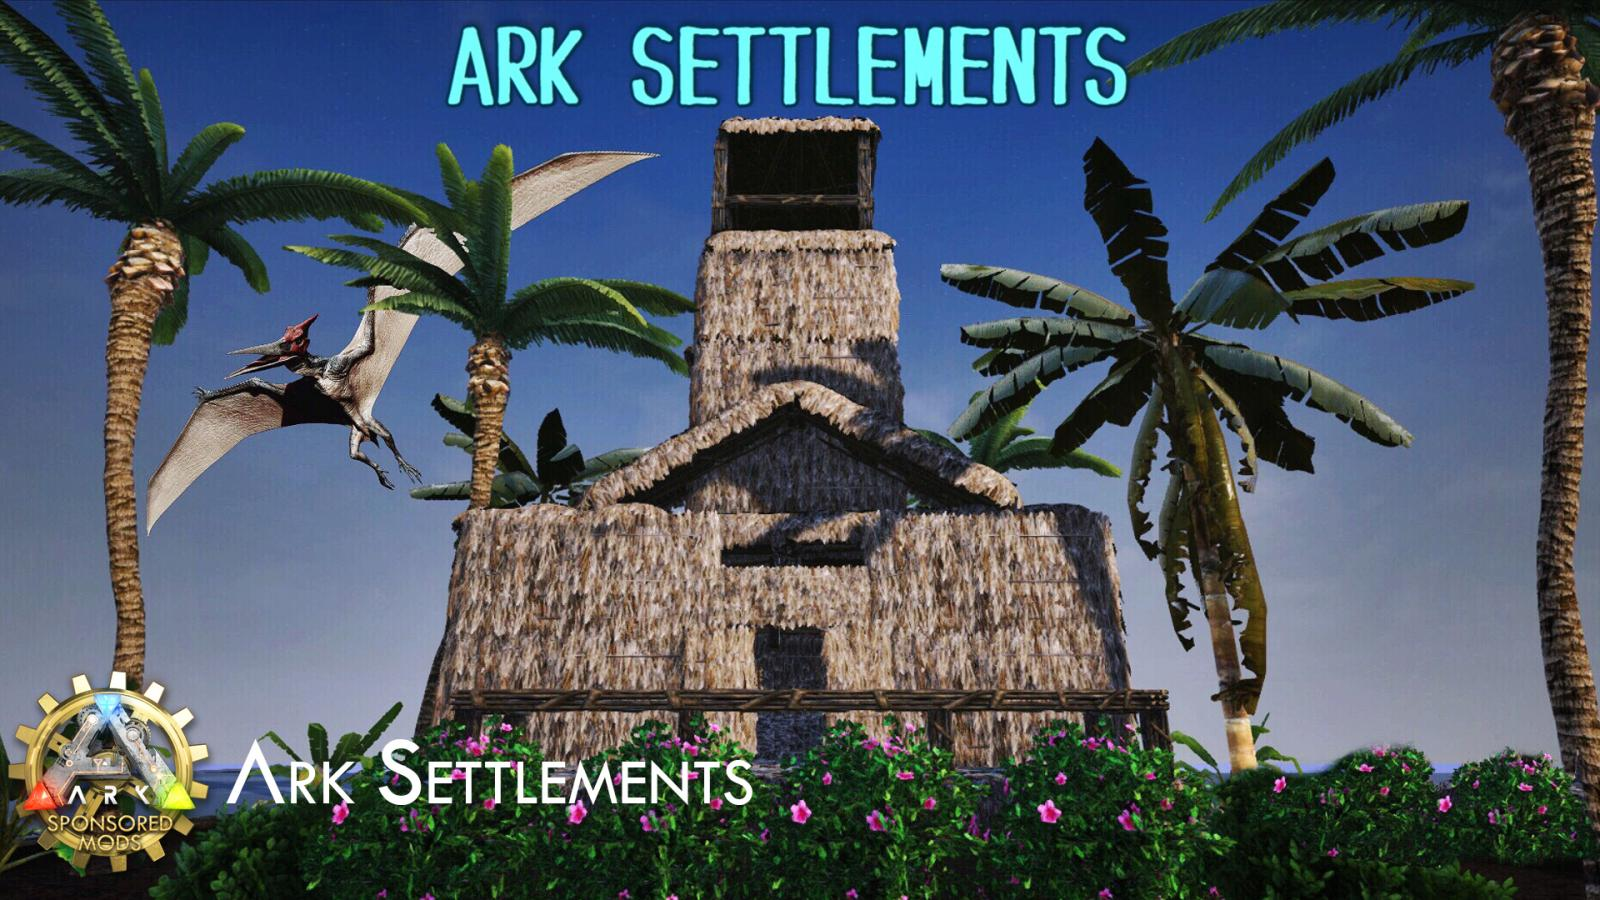 large.ArkSettlements.jpg